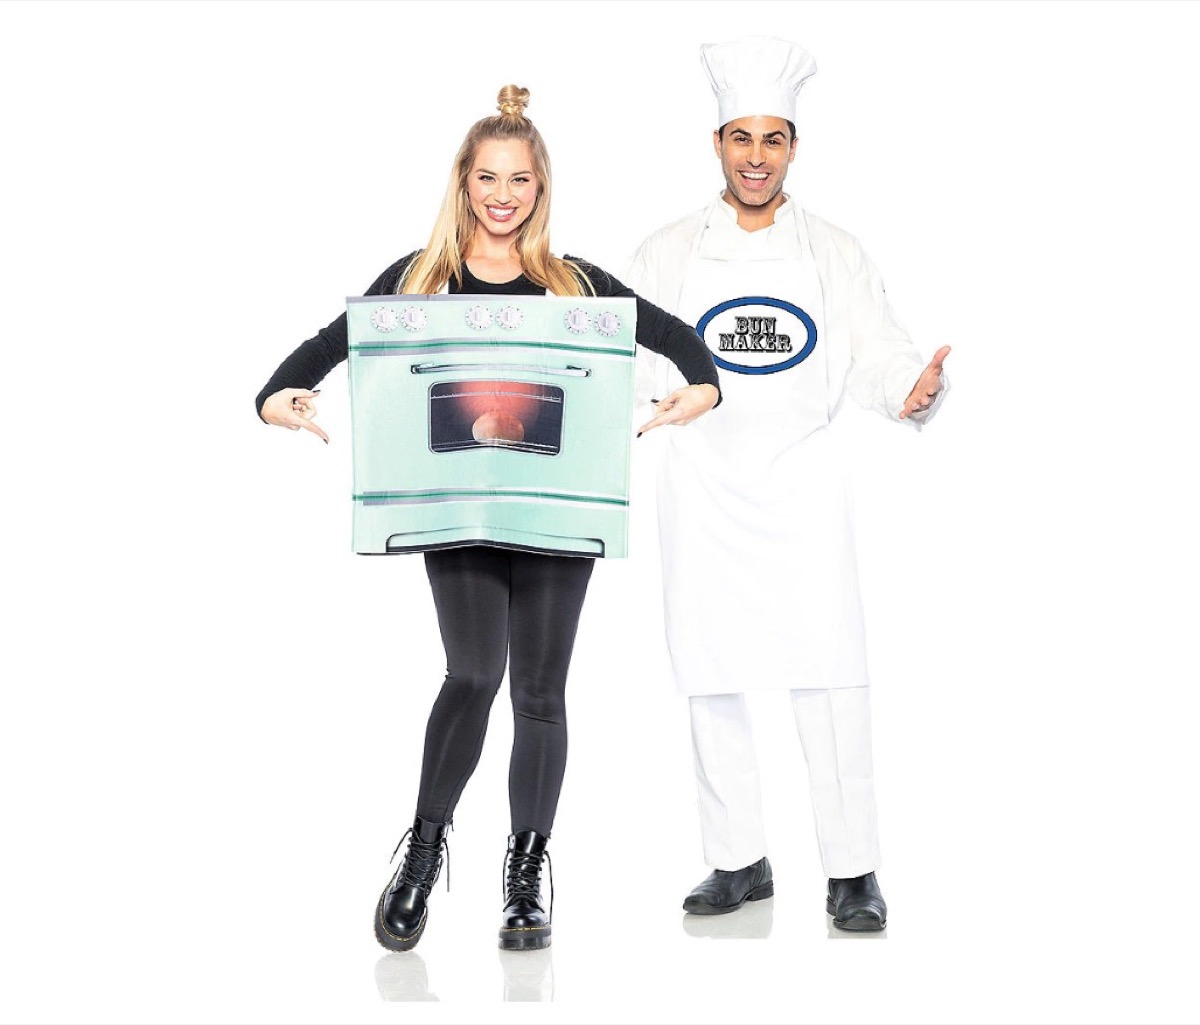 chef and oven costume, best halloween costumes